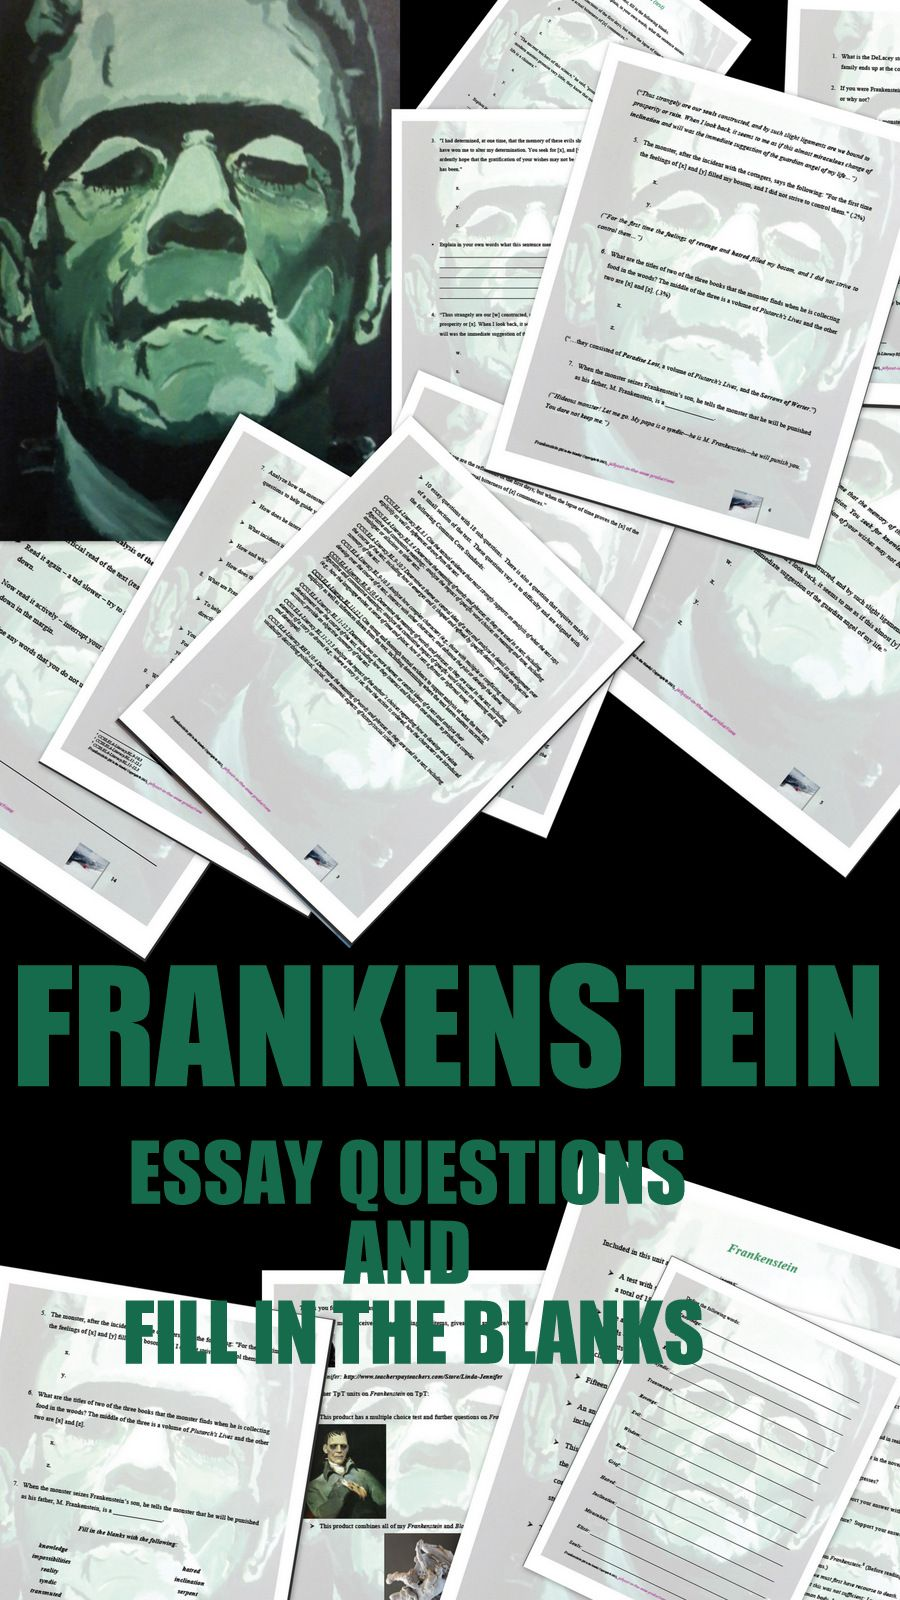 Frankenstein vocabulary essay qs fill in the blanks frankenstein included here a test with 7 fill in the blank questions a fandeluxe Choice Image